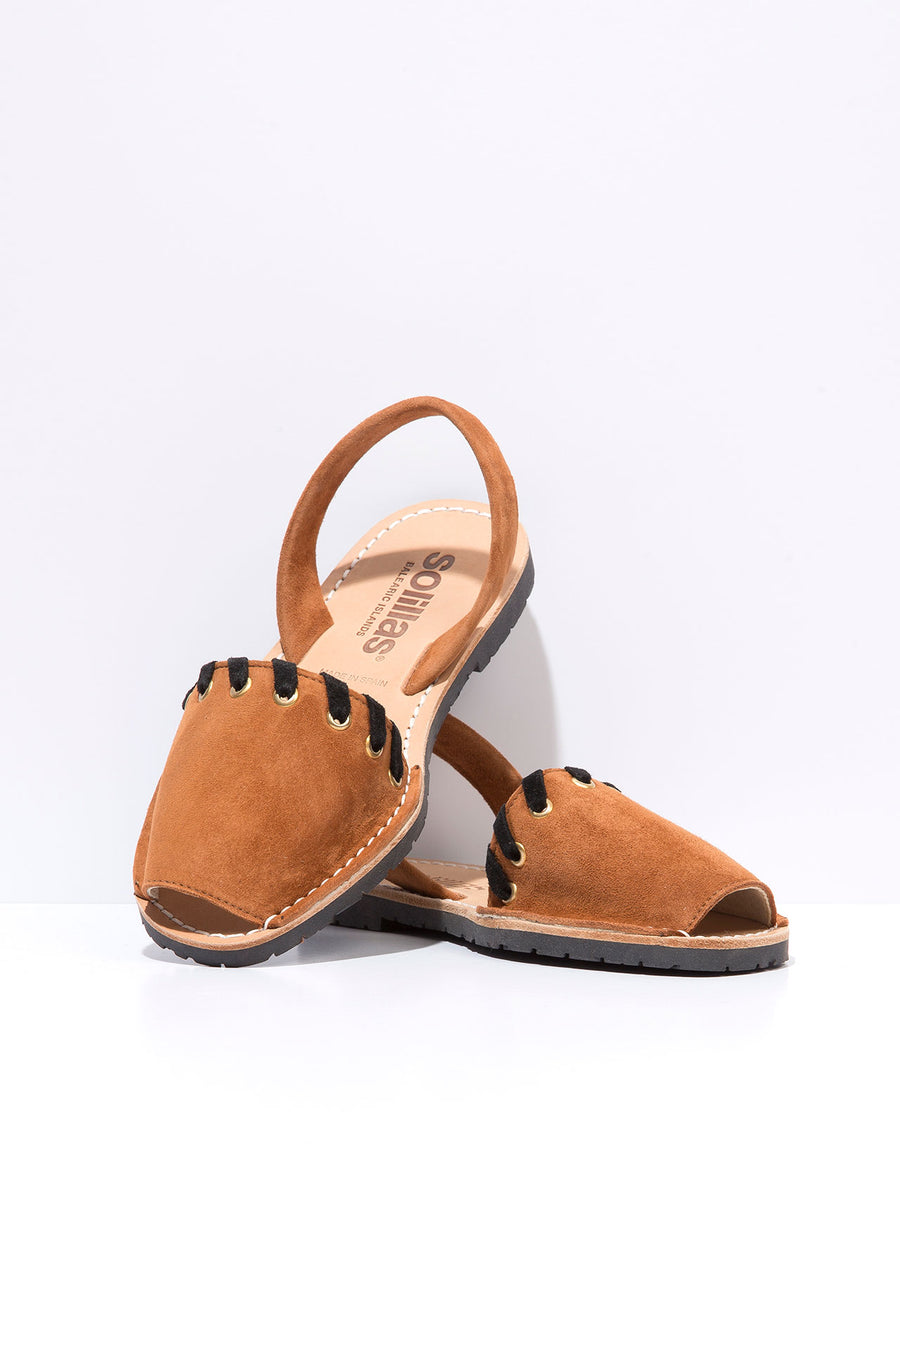 c13271491bd41 Vaquero Tan - Whipstitch Leather Menorcan sandals